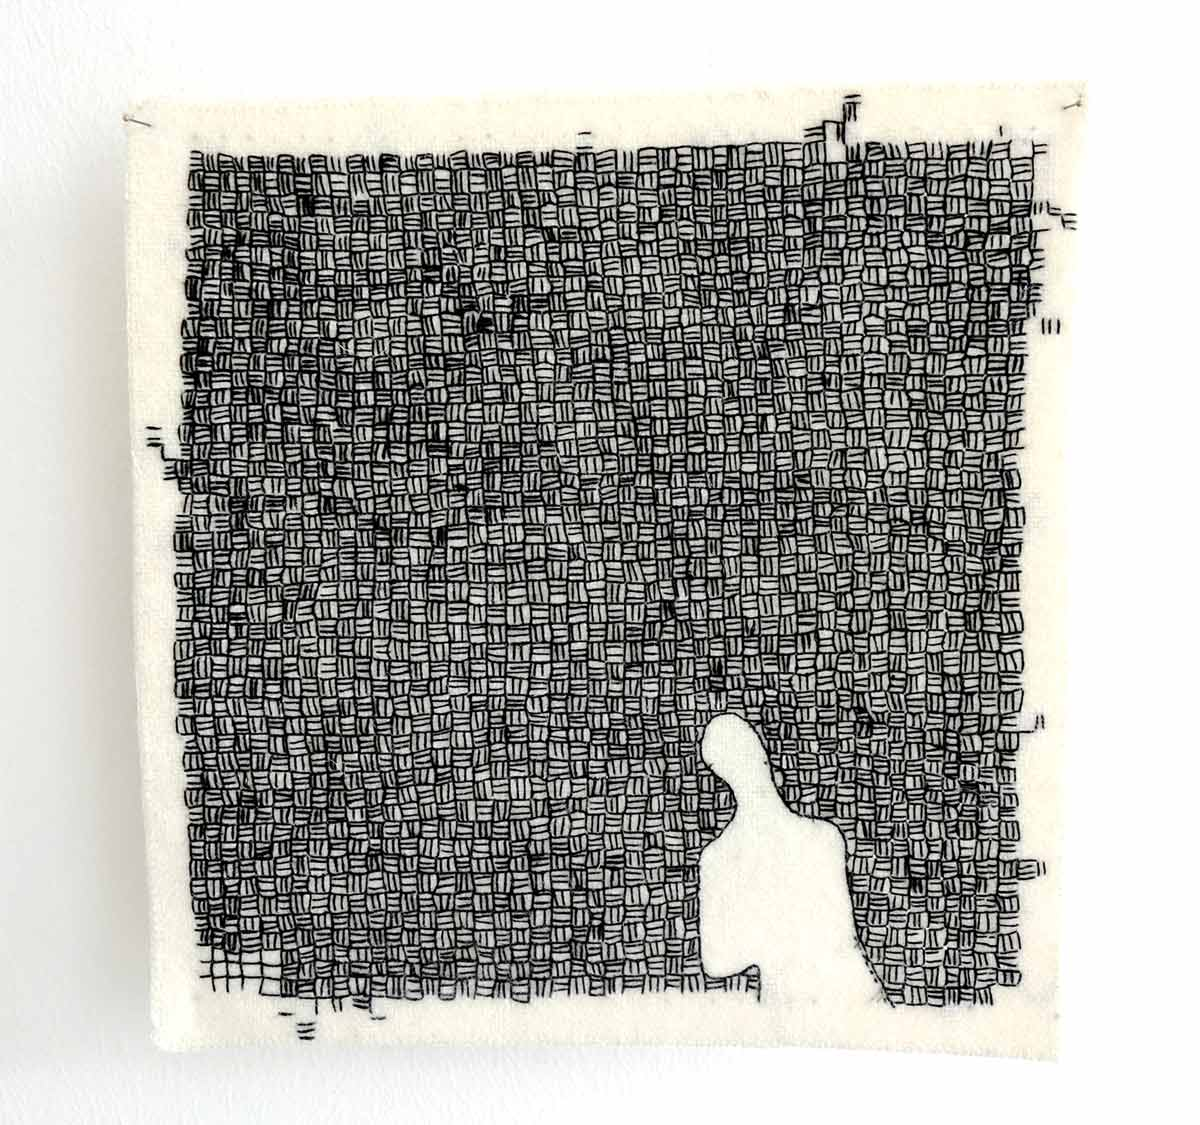 FIVE O'CLOCK SHADOW | Hand embroidered, cotton on wool,19cms x 19cms. Photo: Yeshen Venema.